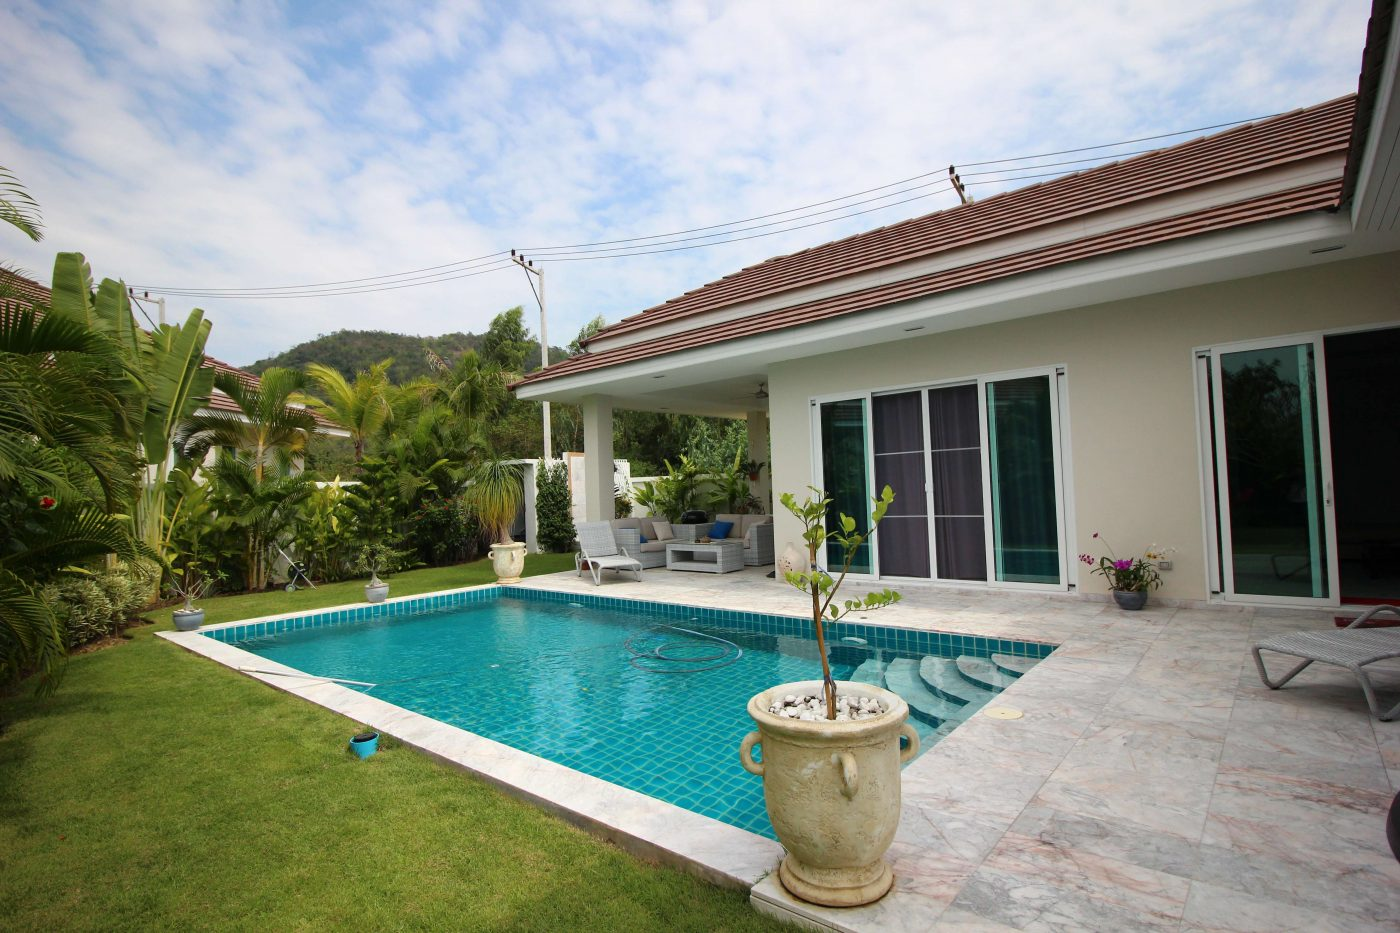 RM WATERSIDE : Luxury 3 Bedroom Pool Villa for sale at Soi 88, 7 kilometres from Hua Hin Town